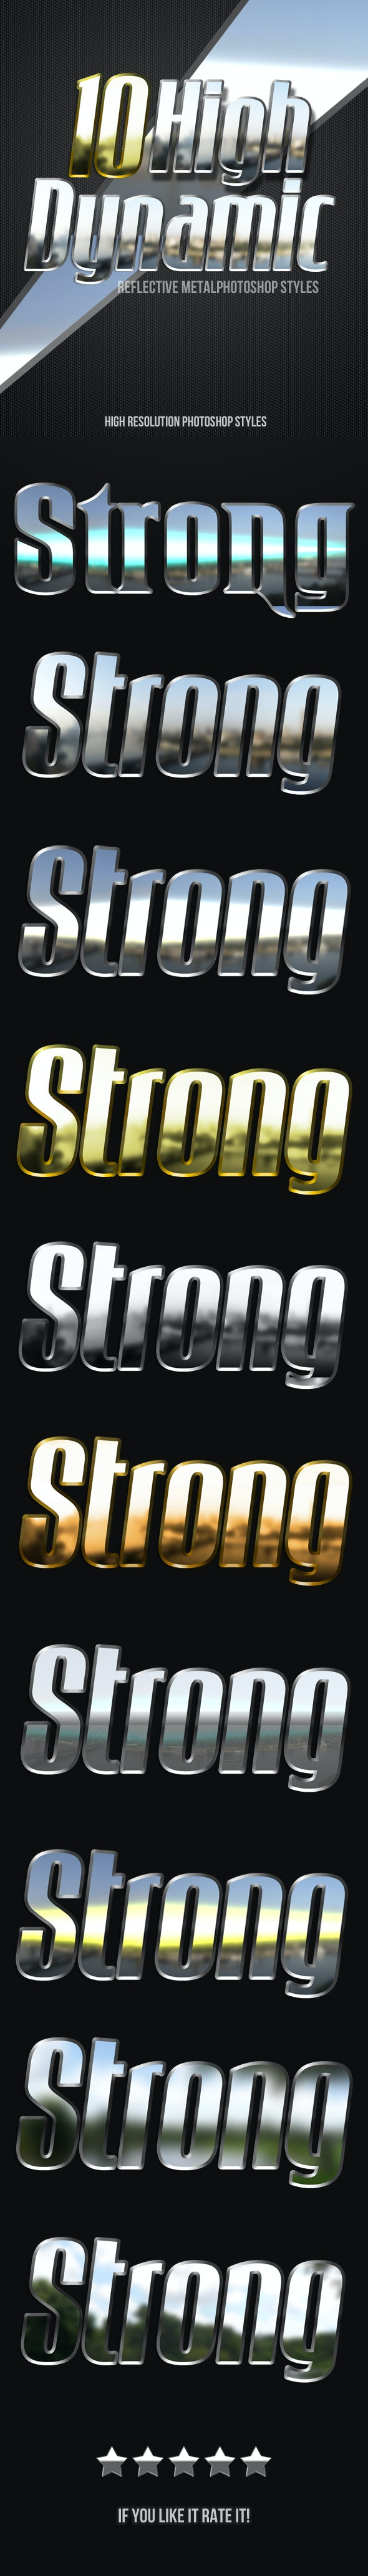 HDR Metal Photoshop Styles - Text Effects Styles